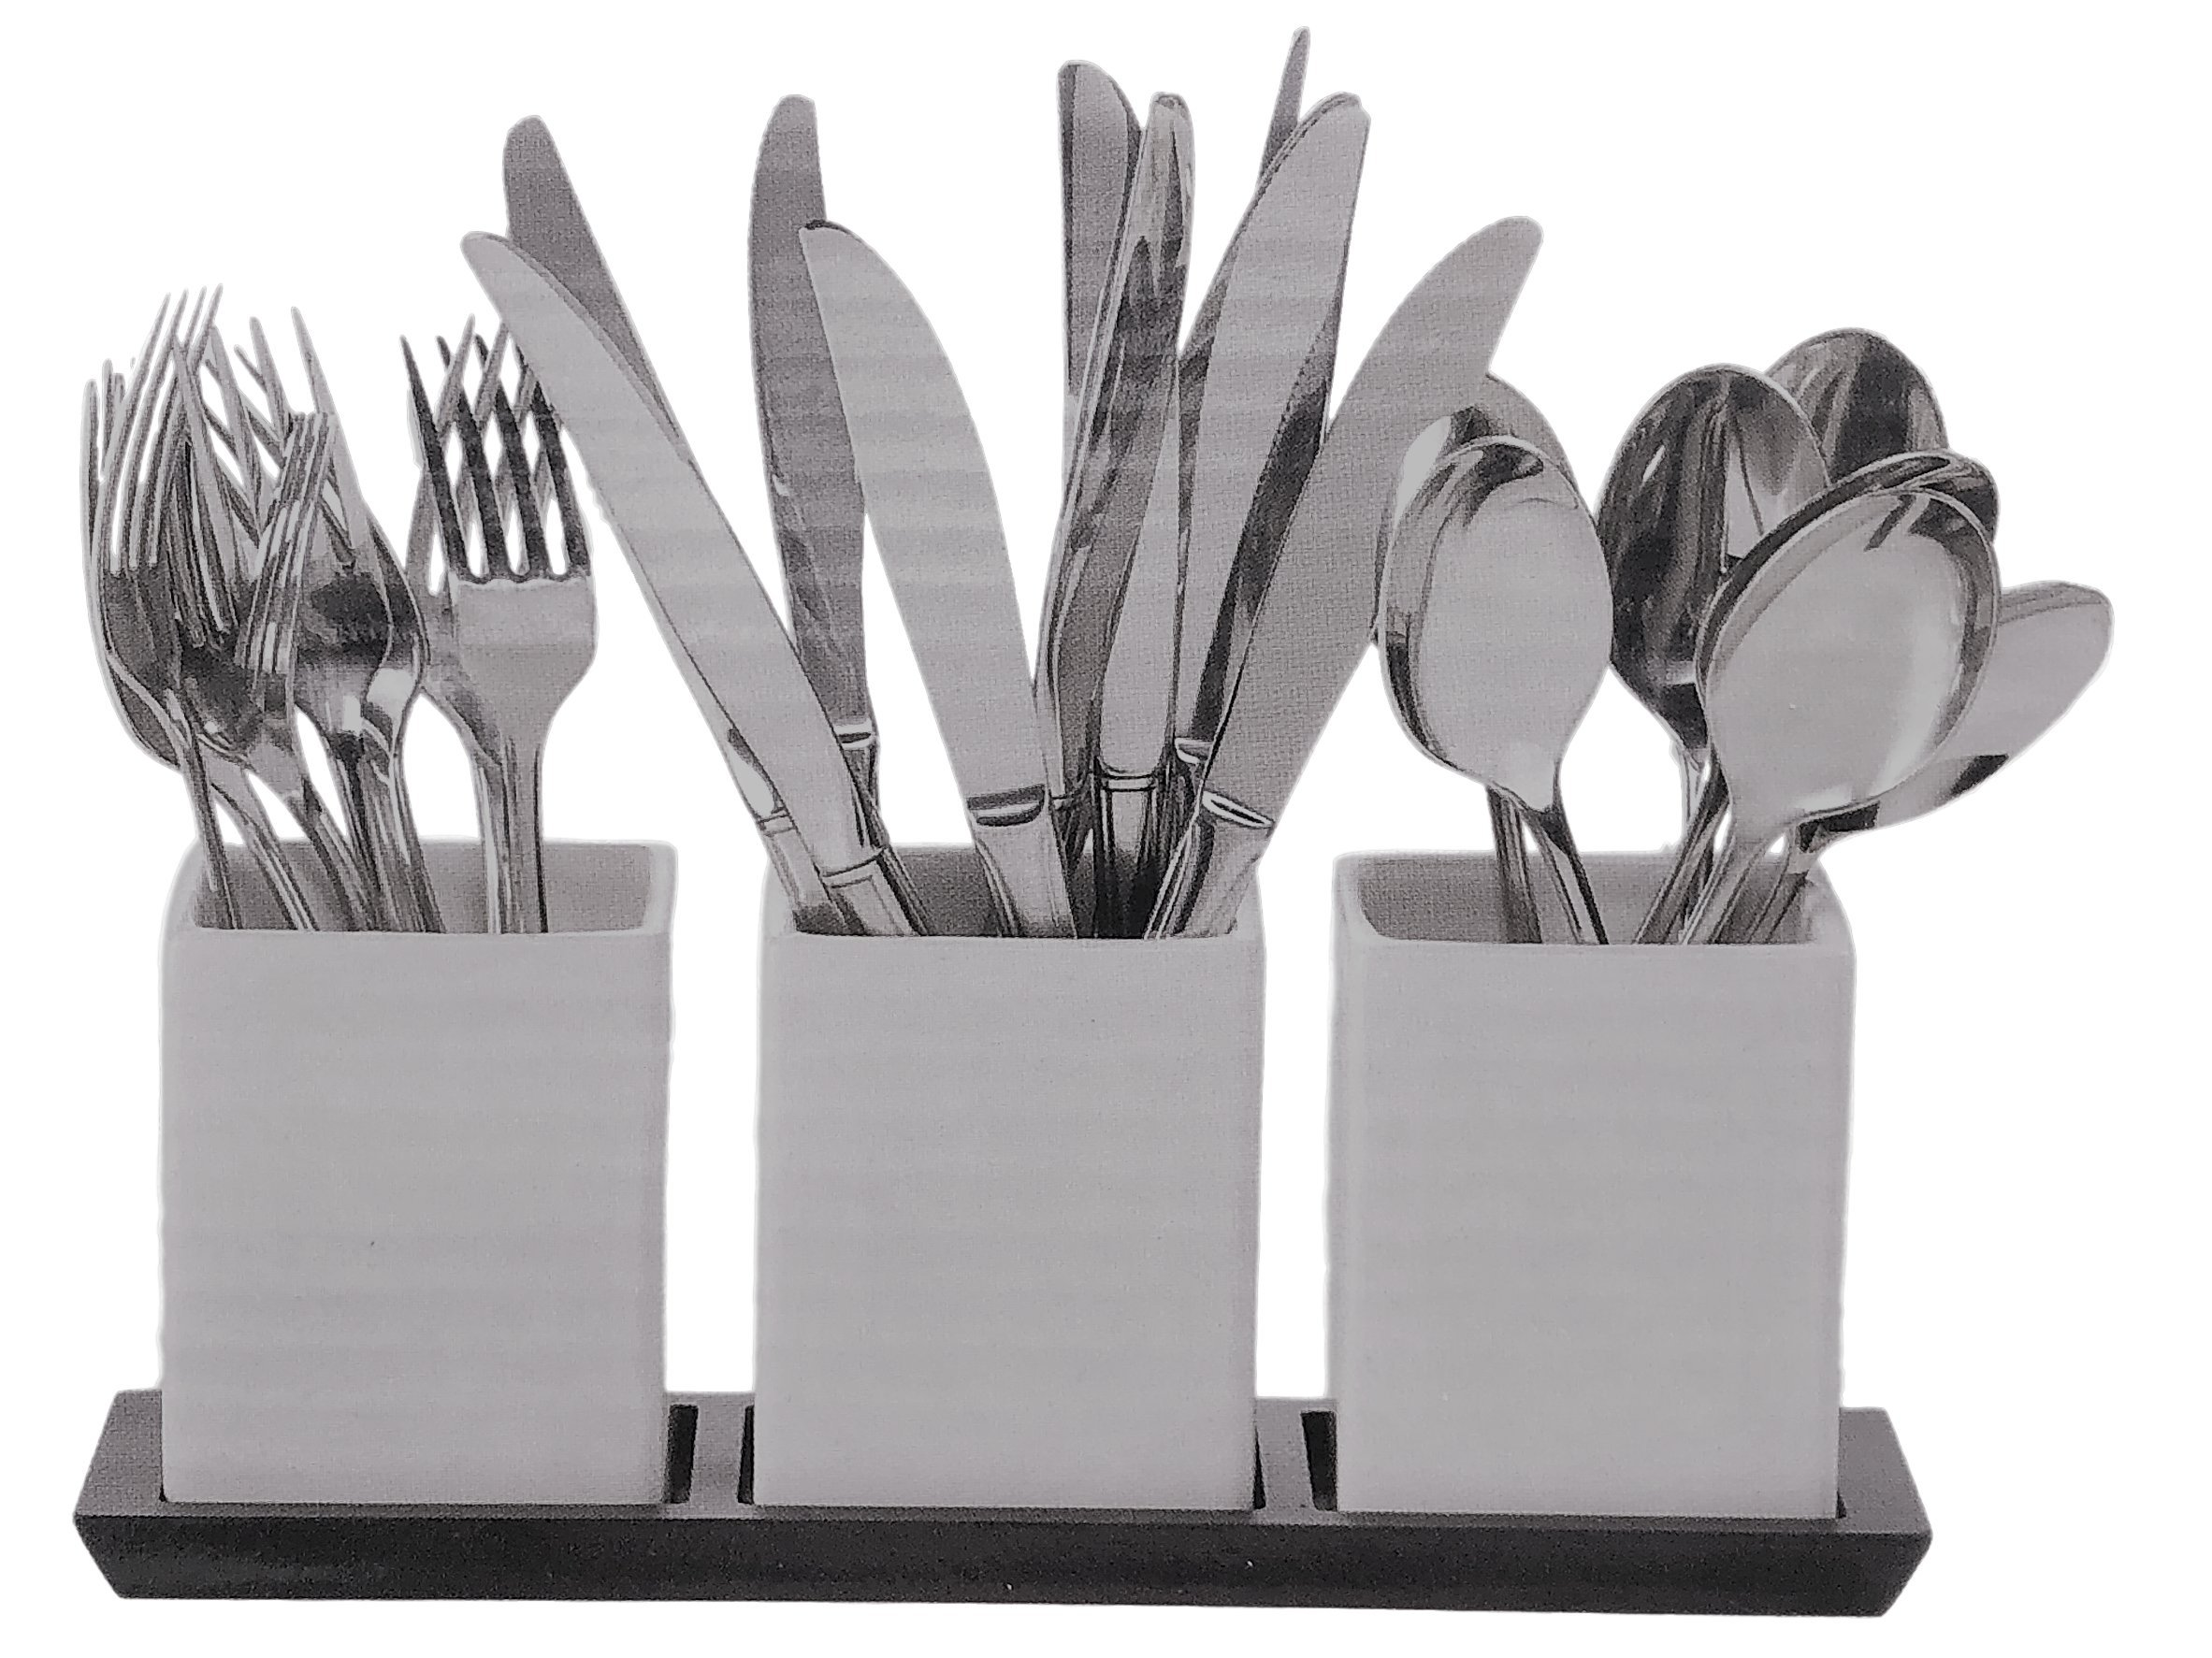 Cobble Creek (4 piece) Ceramic Utensil Caddy Set for Home Party Pantry Organization and Storage.